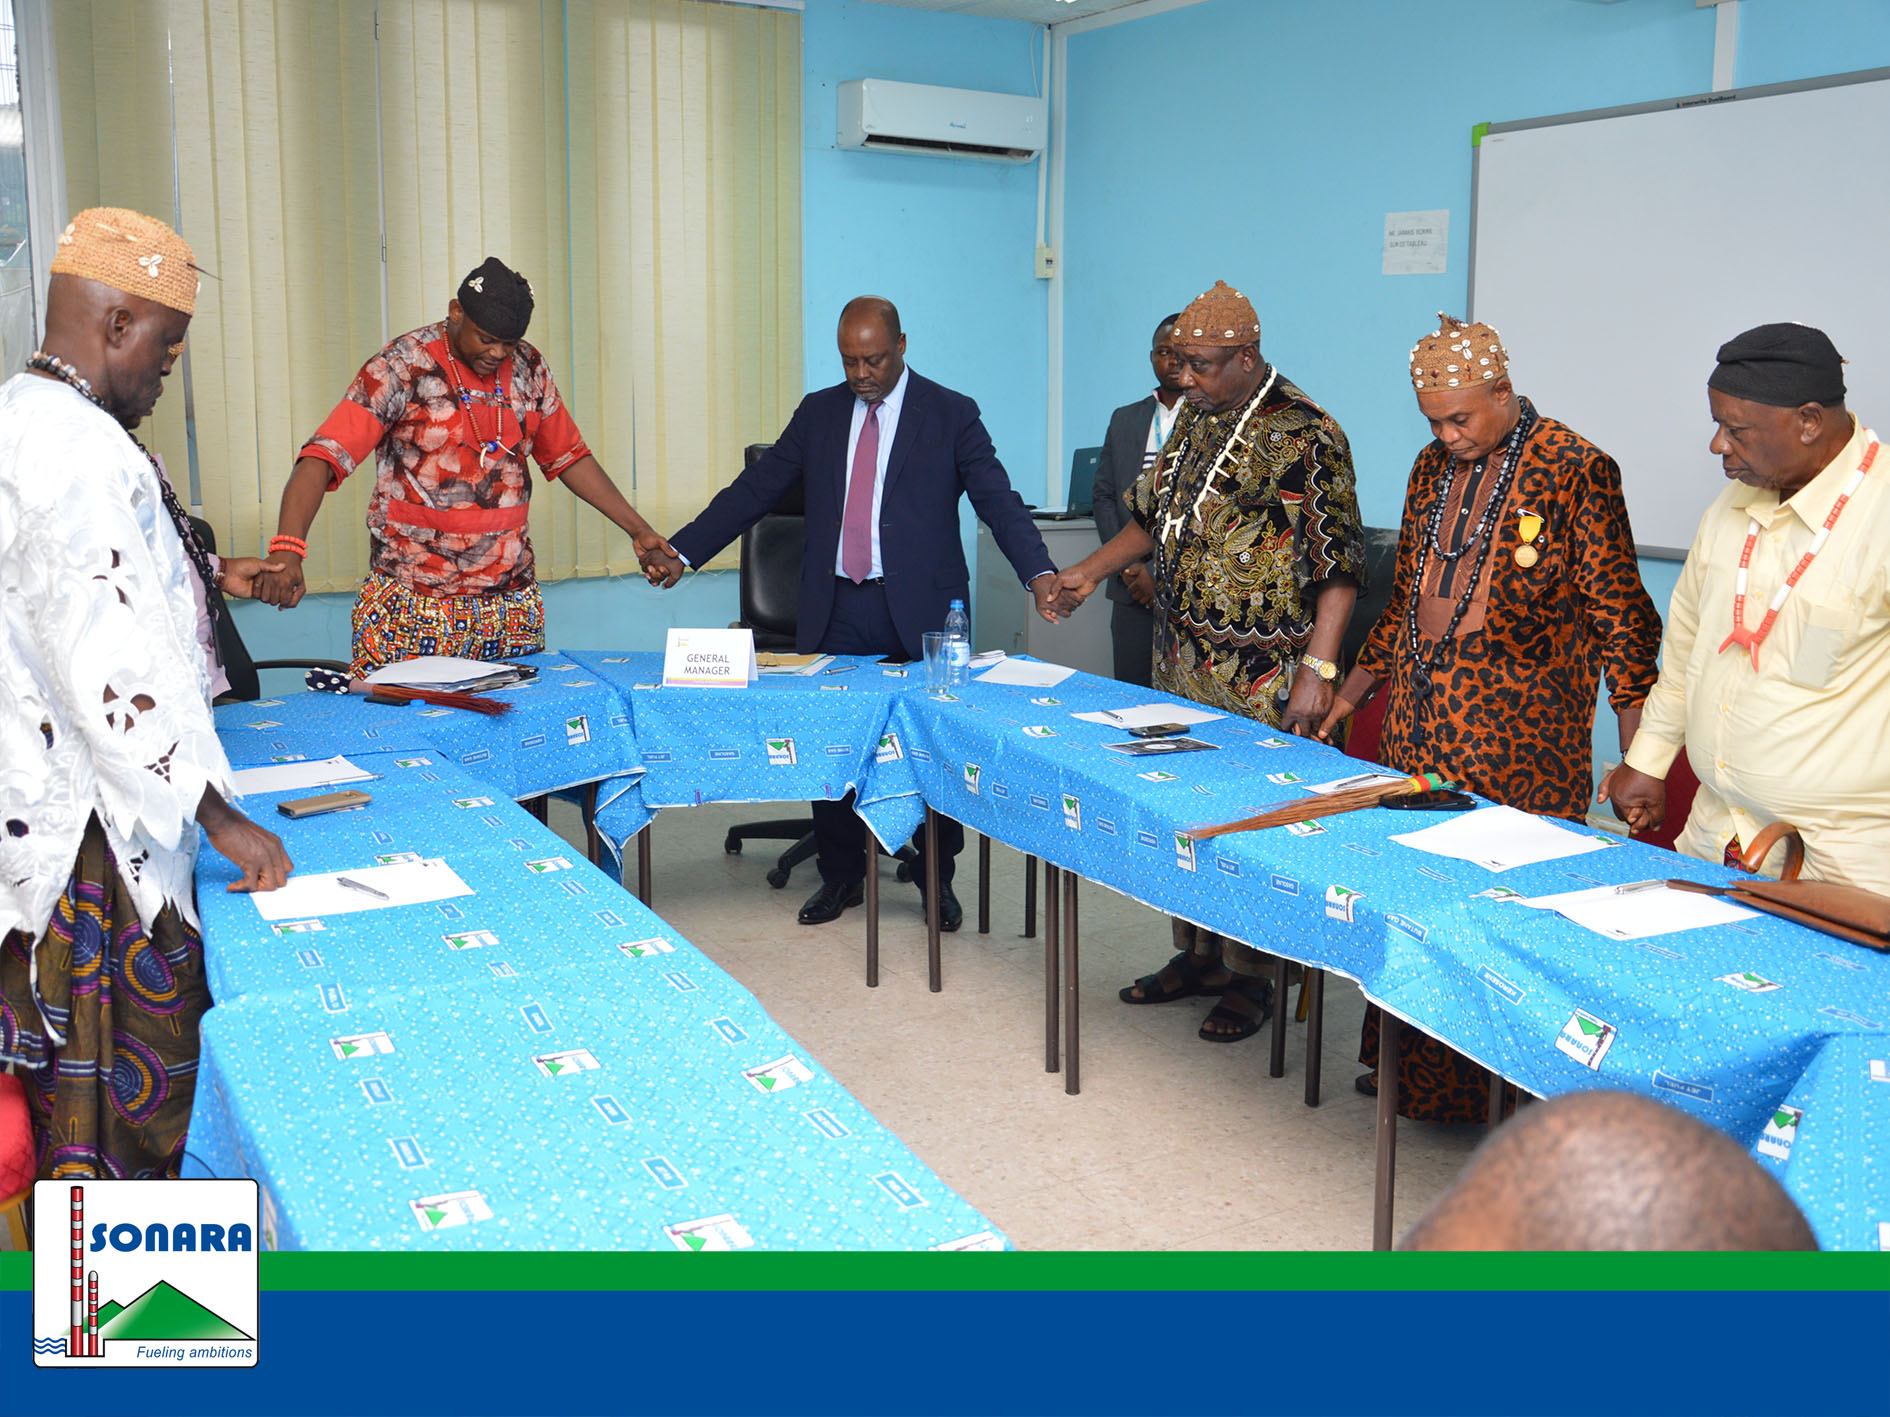 Visit of the Fako Chiefs' Conference to SONARA on Wednesday 12 June 2019